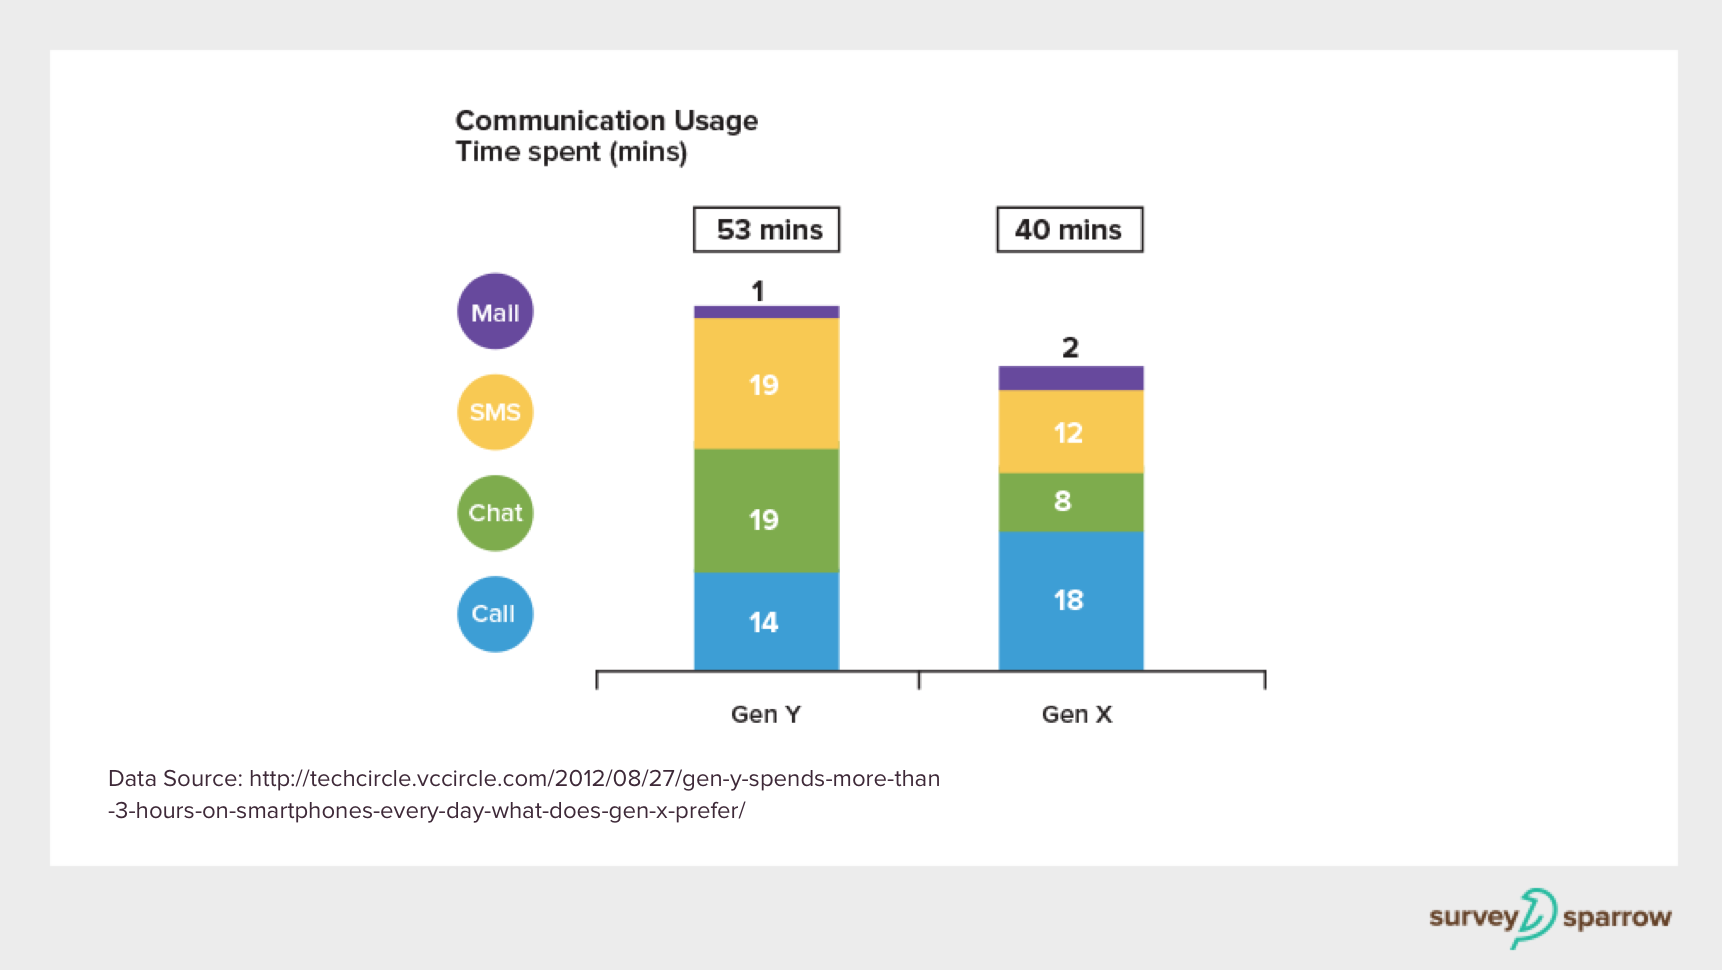 communication usage graph analysis in different channels